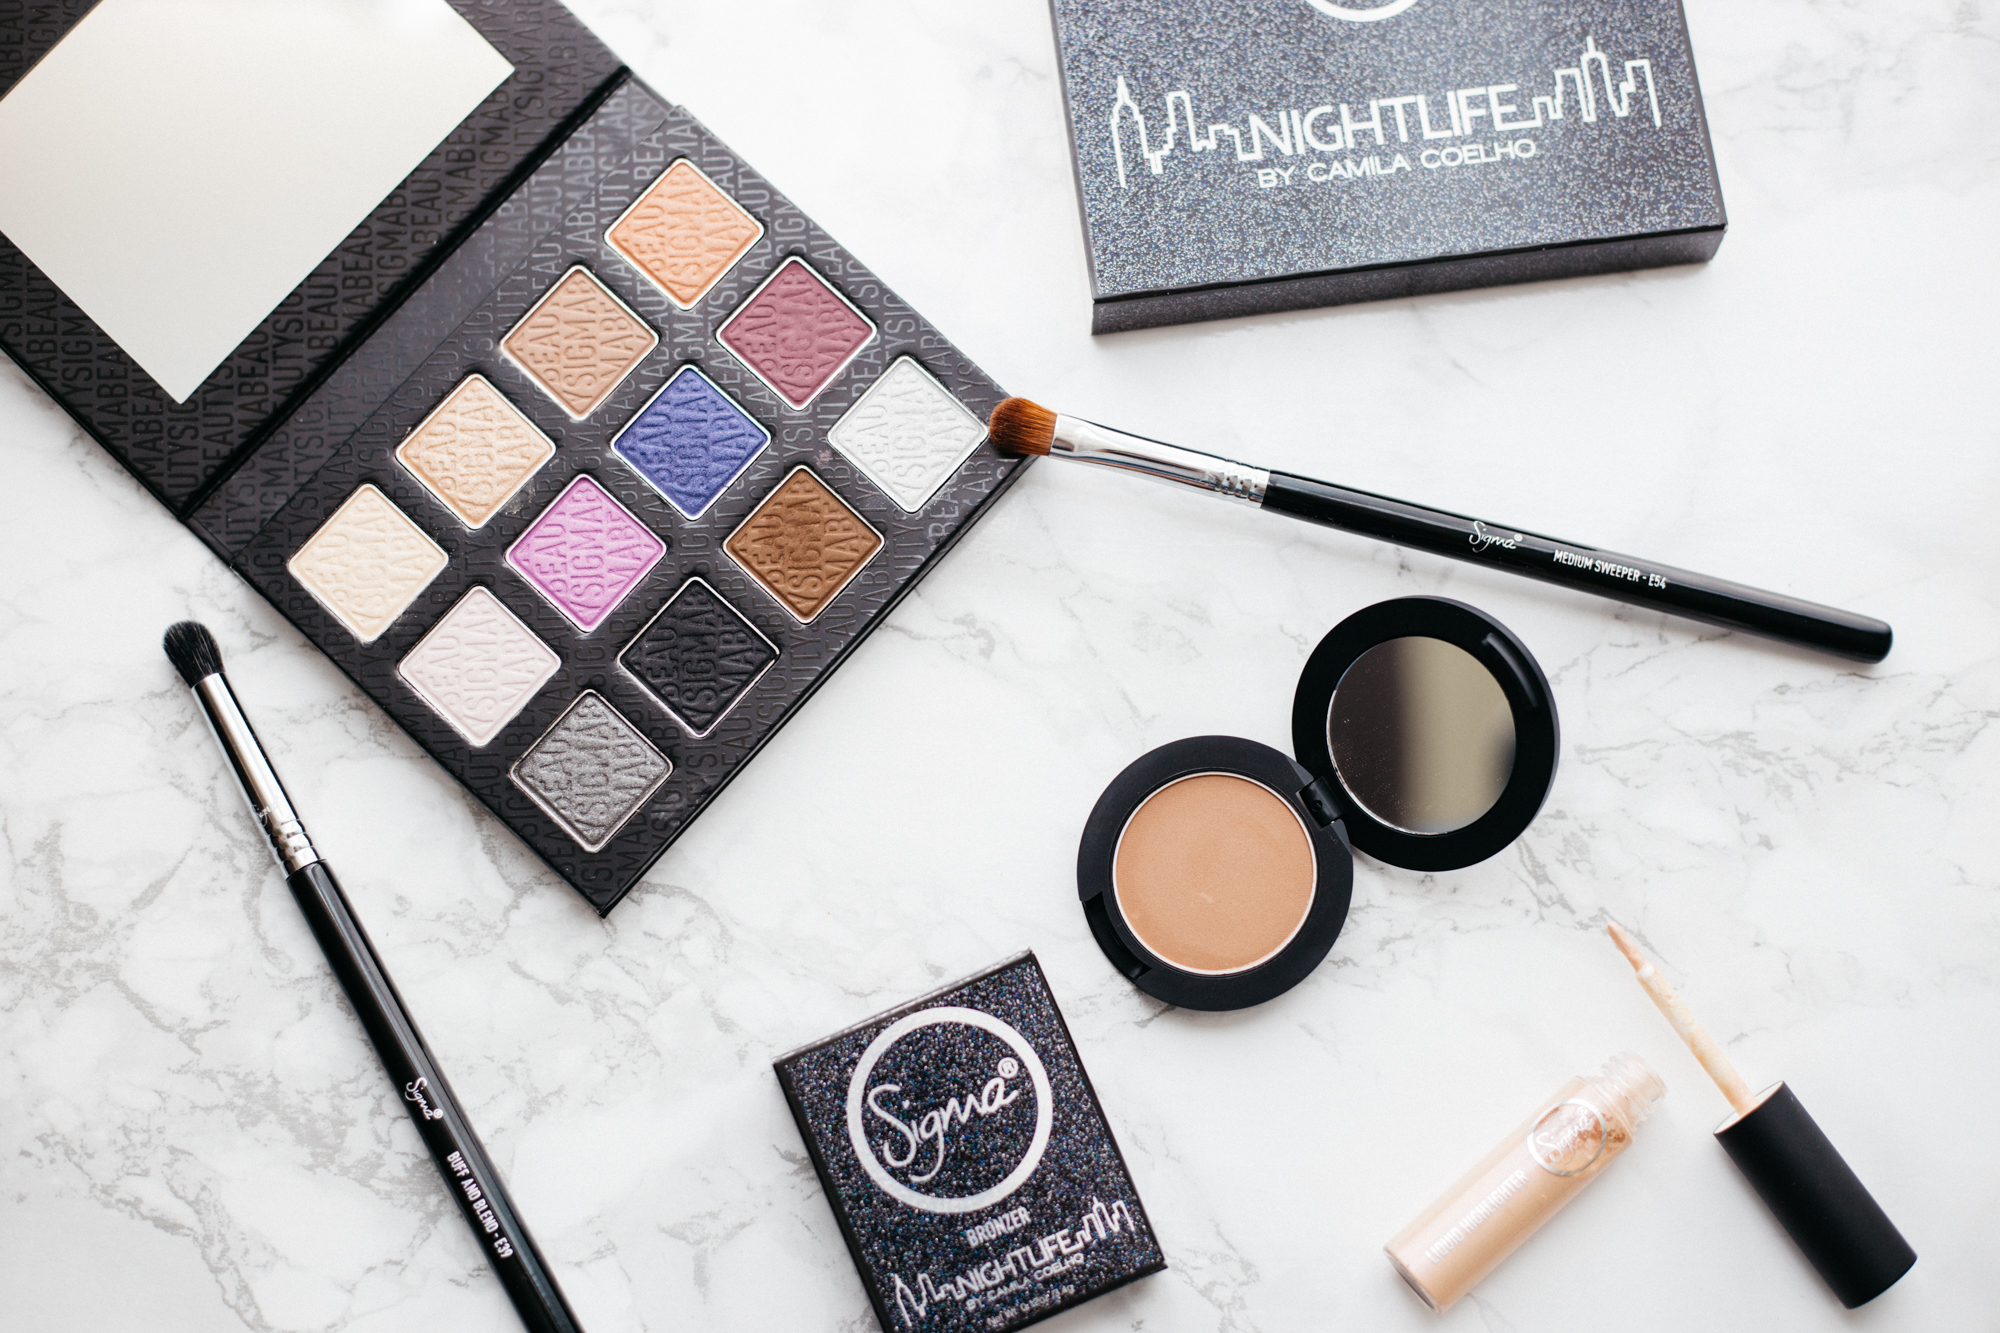 Sigma Beauty Nightlife Collection